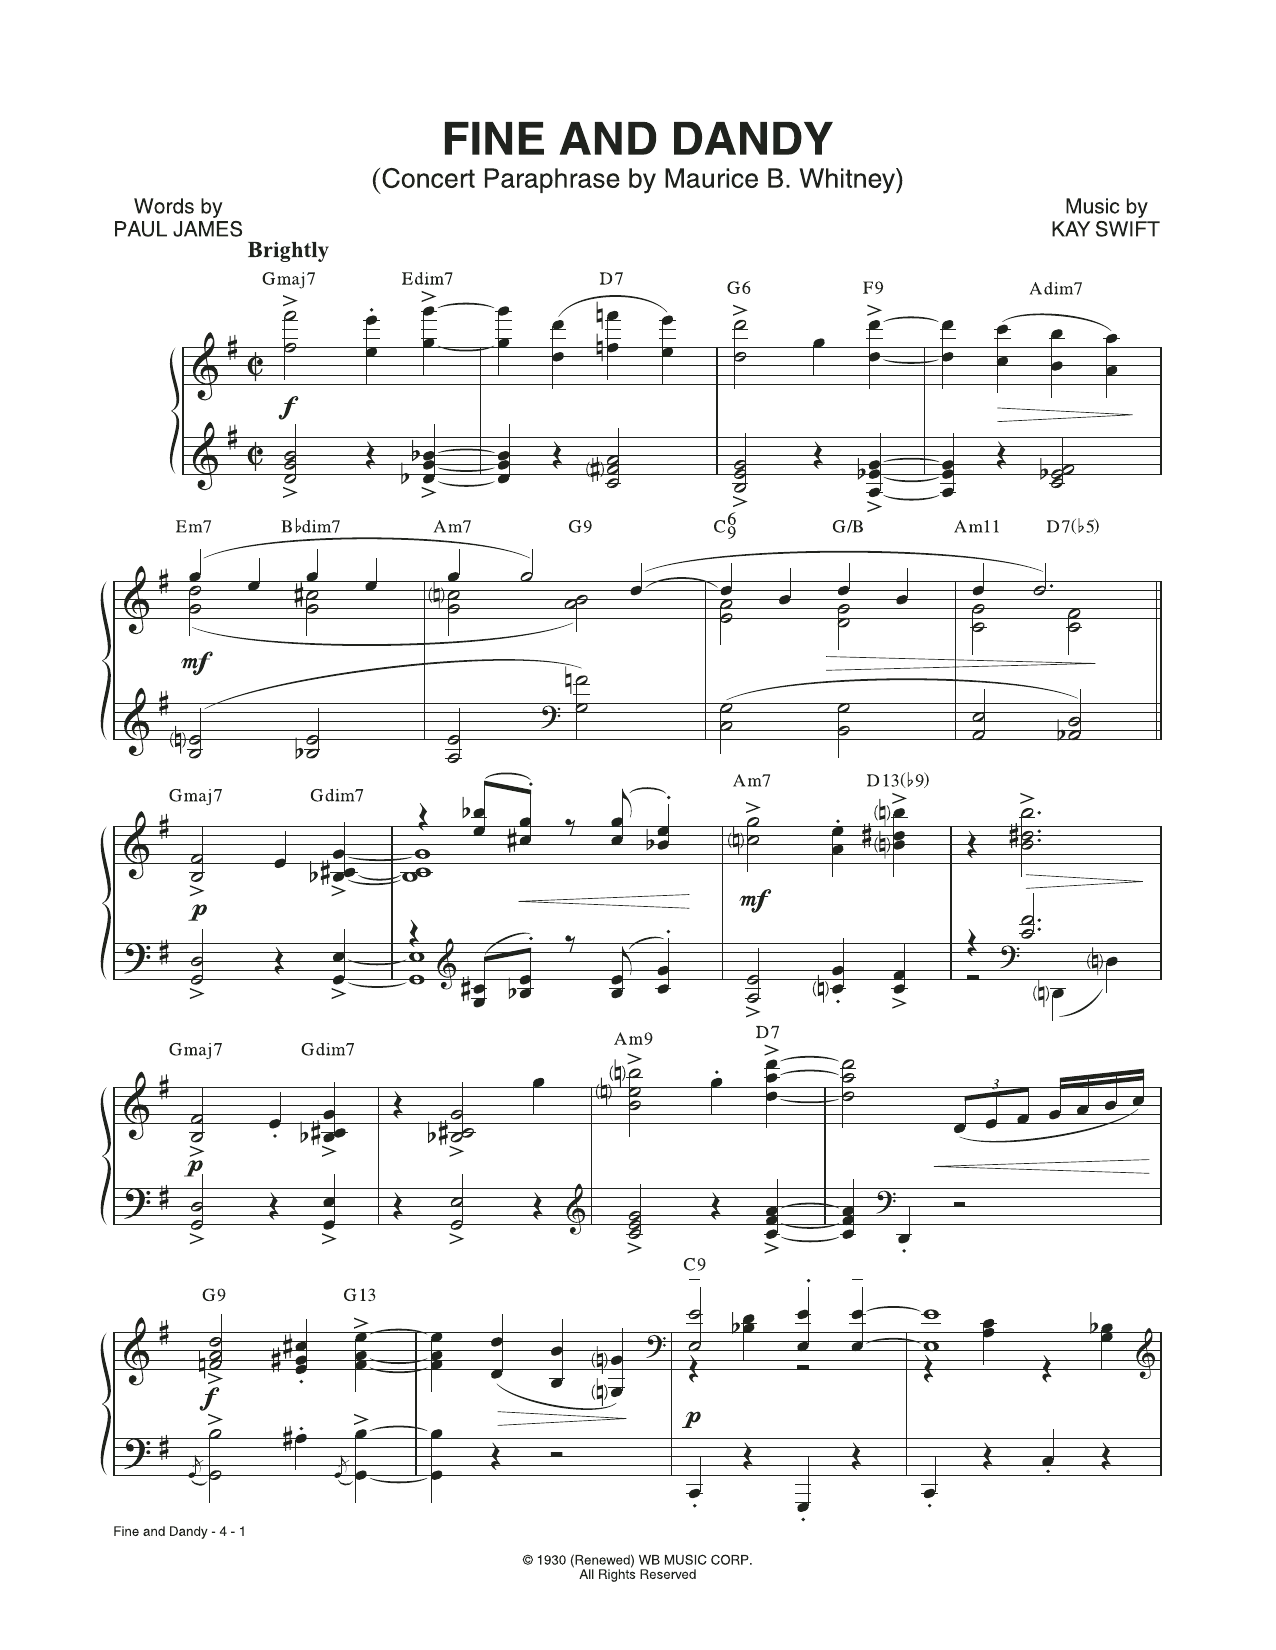 Fine And Dandy (Concert Paraphrase by Maurice B. Whitney) (from the musical Fine and Dandy) (Piano & Vocal)